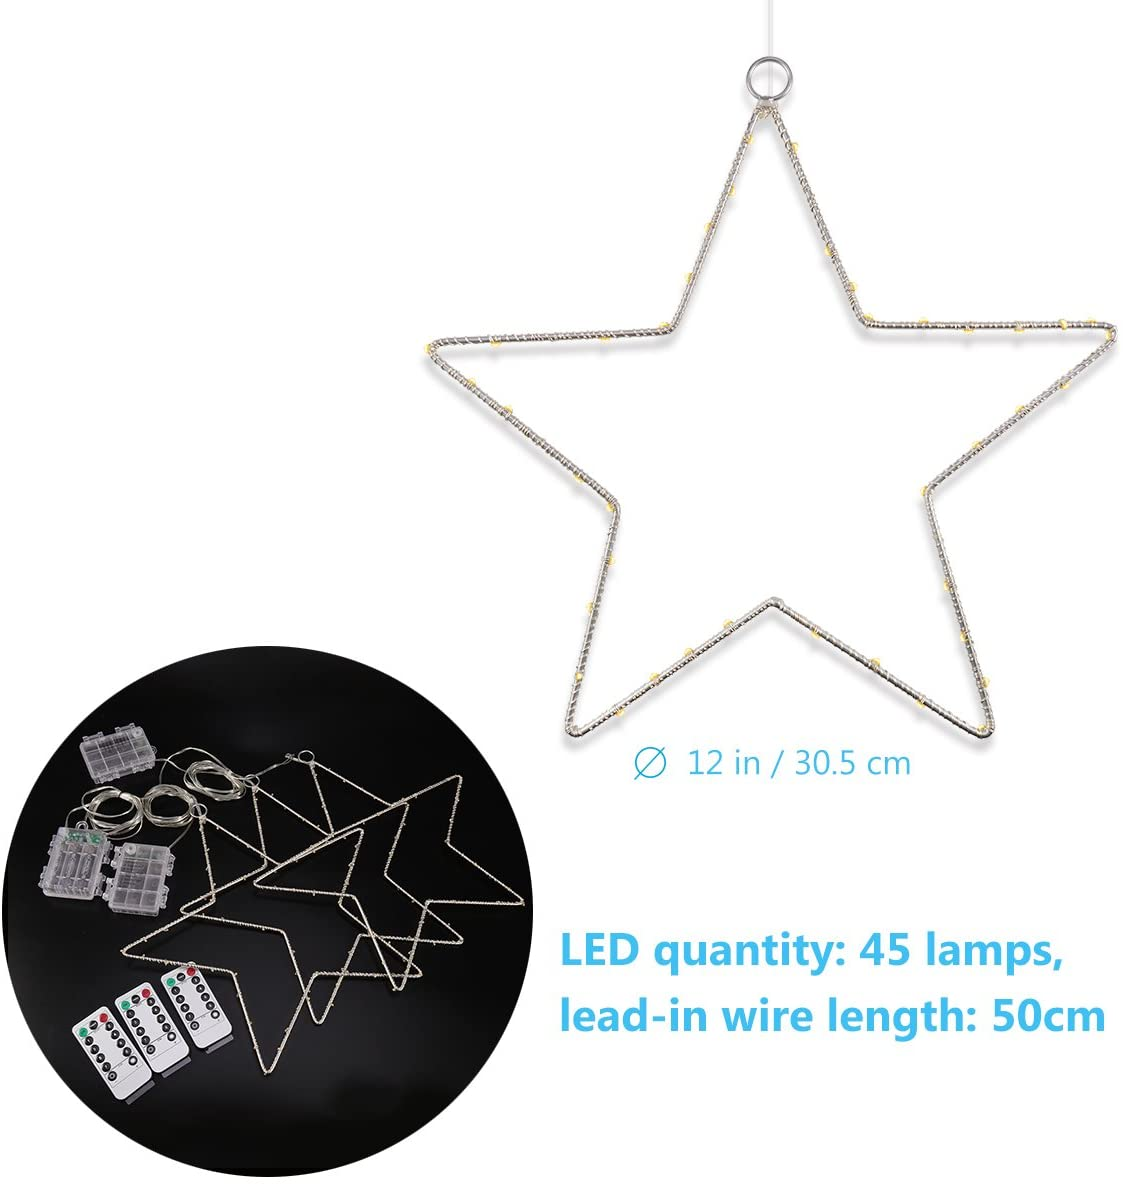 LED String Lights, Window Star Lights Wire Decor Lights Hanging Lights for New Year Home Holiday Party, 3 Pack